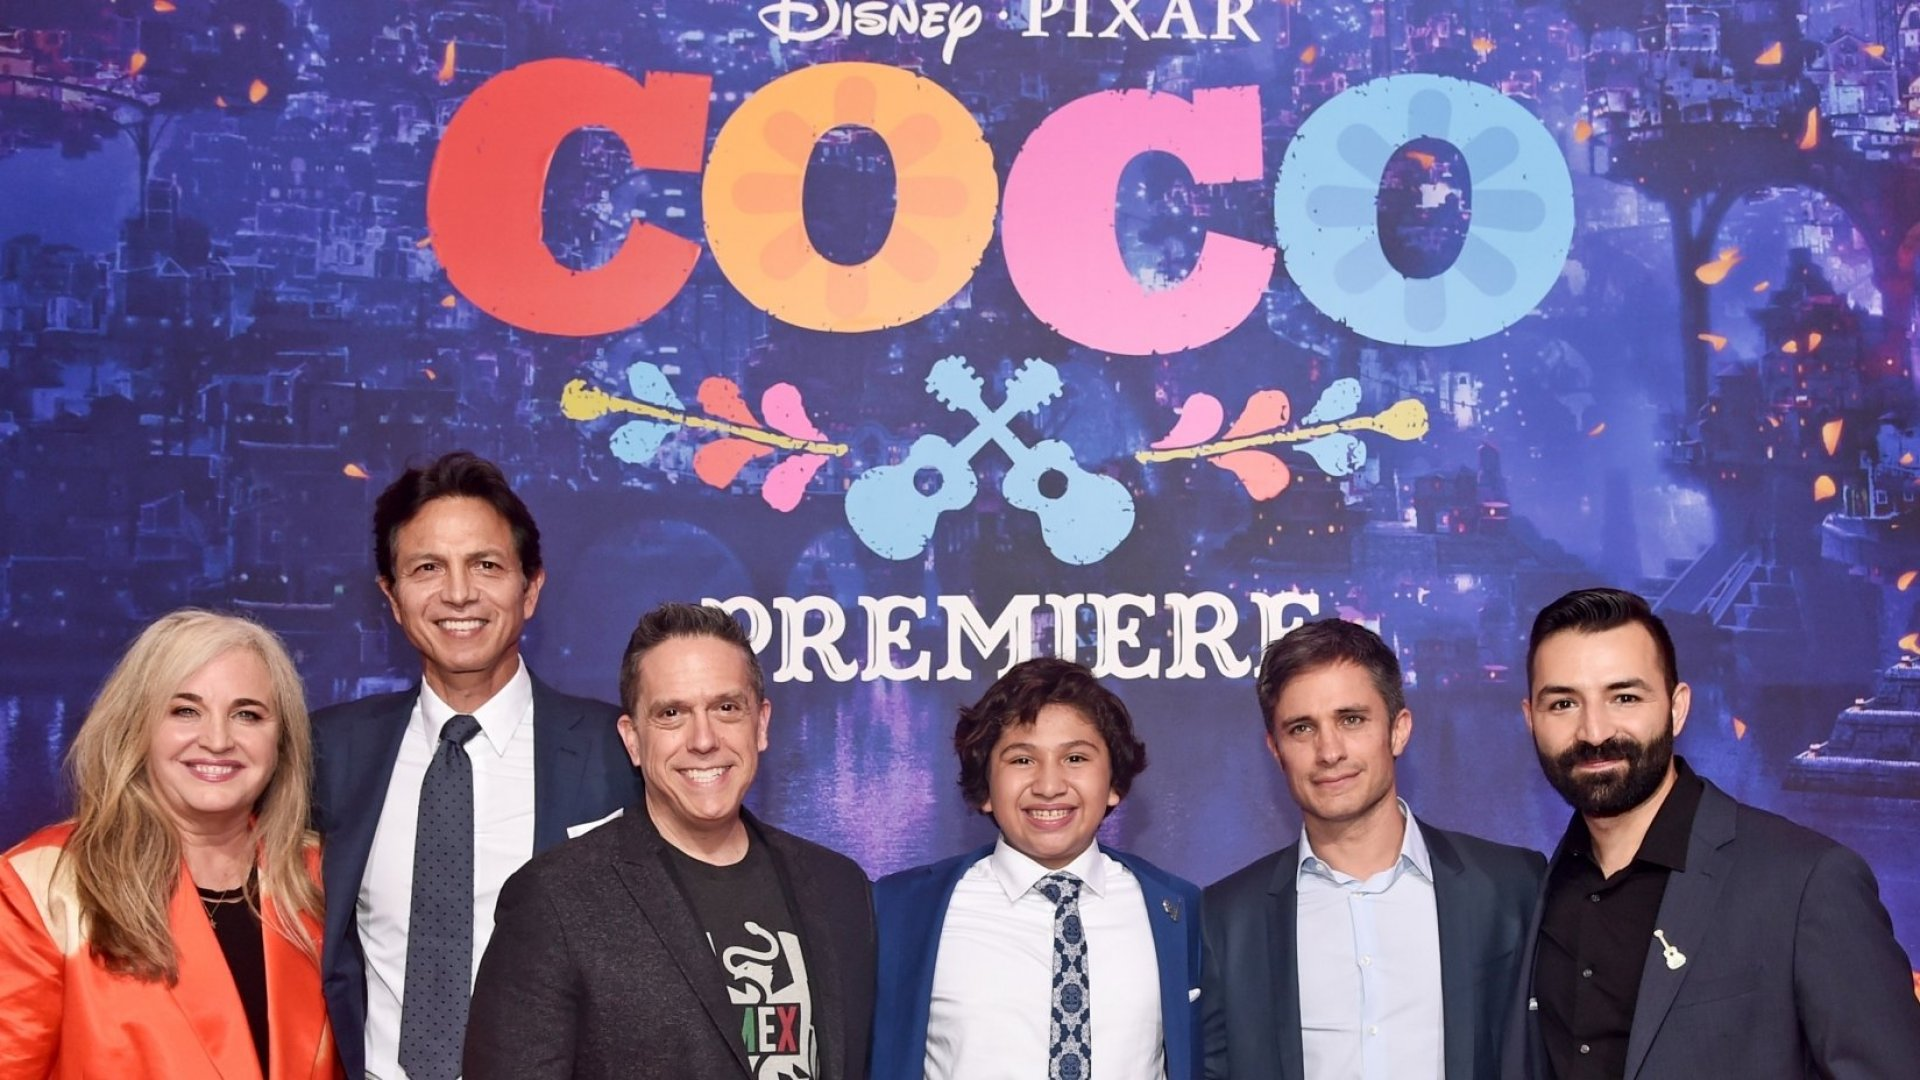 How Pixar Got Multicultural Marketing Right With Its Academy-Award Winning Film 'Coco'